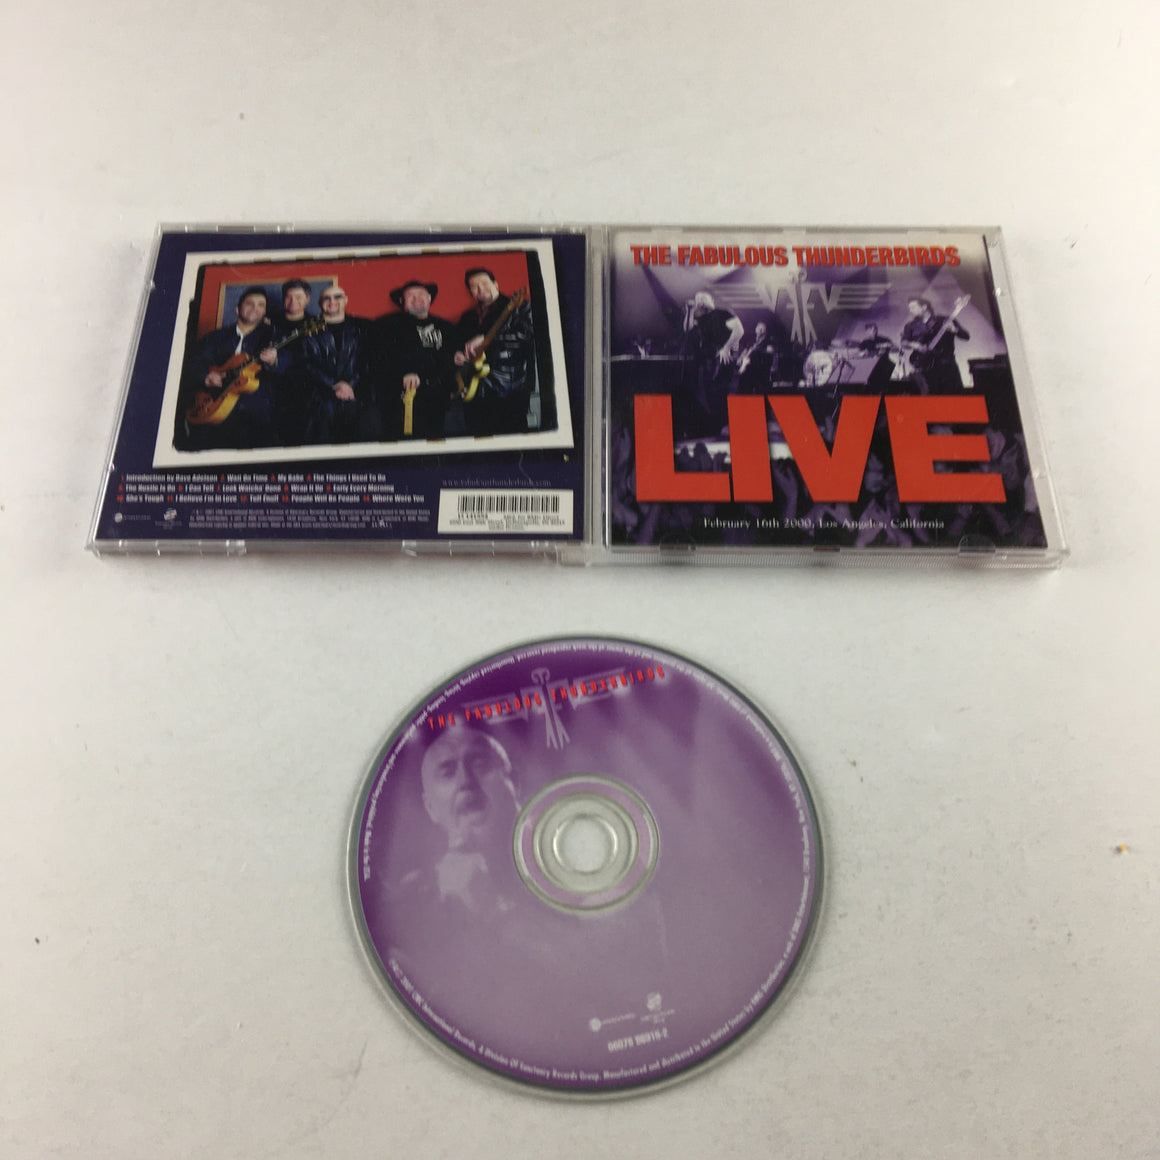 The Fabulous Thunderbirds Live Used CD VG 06076 86315-2